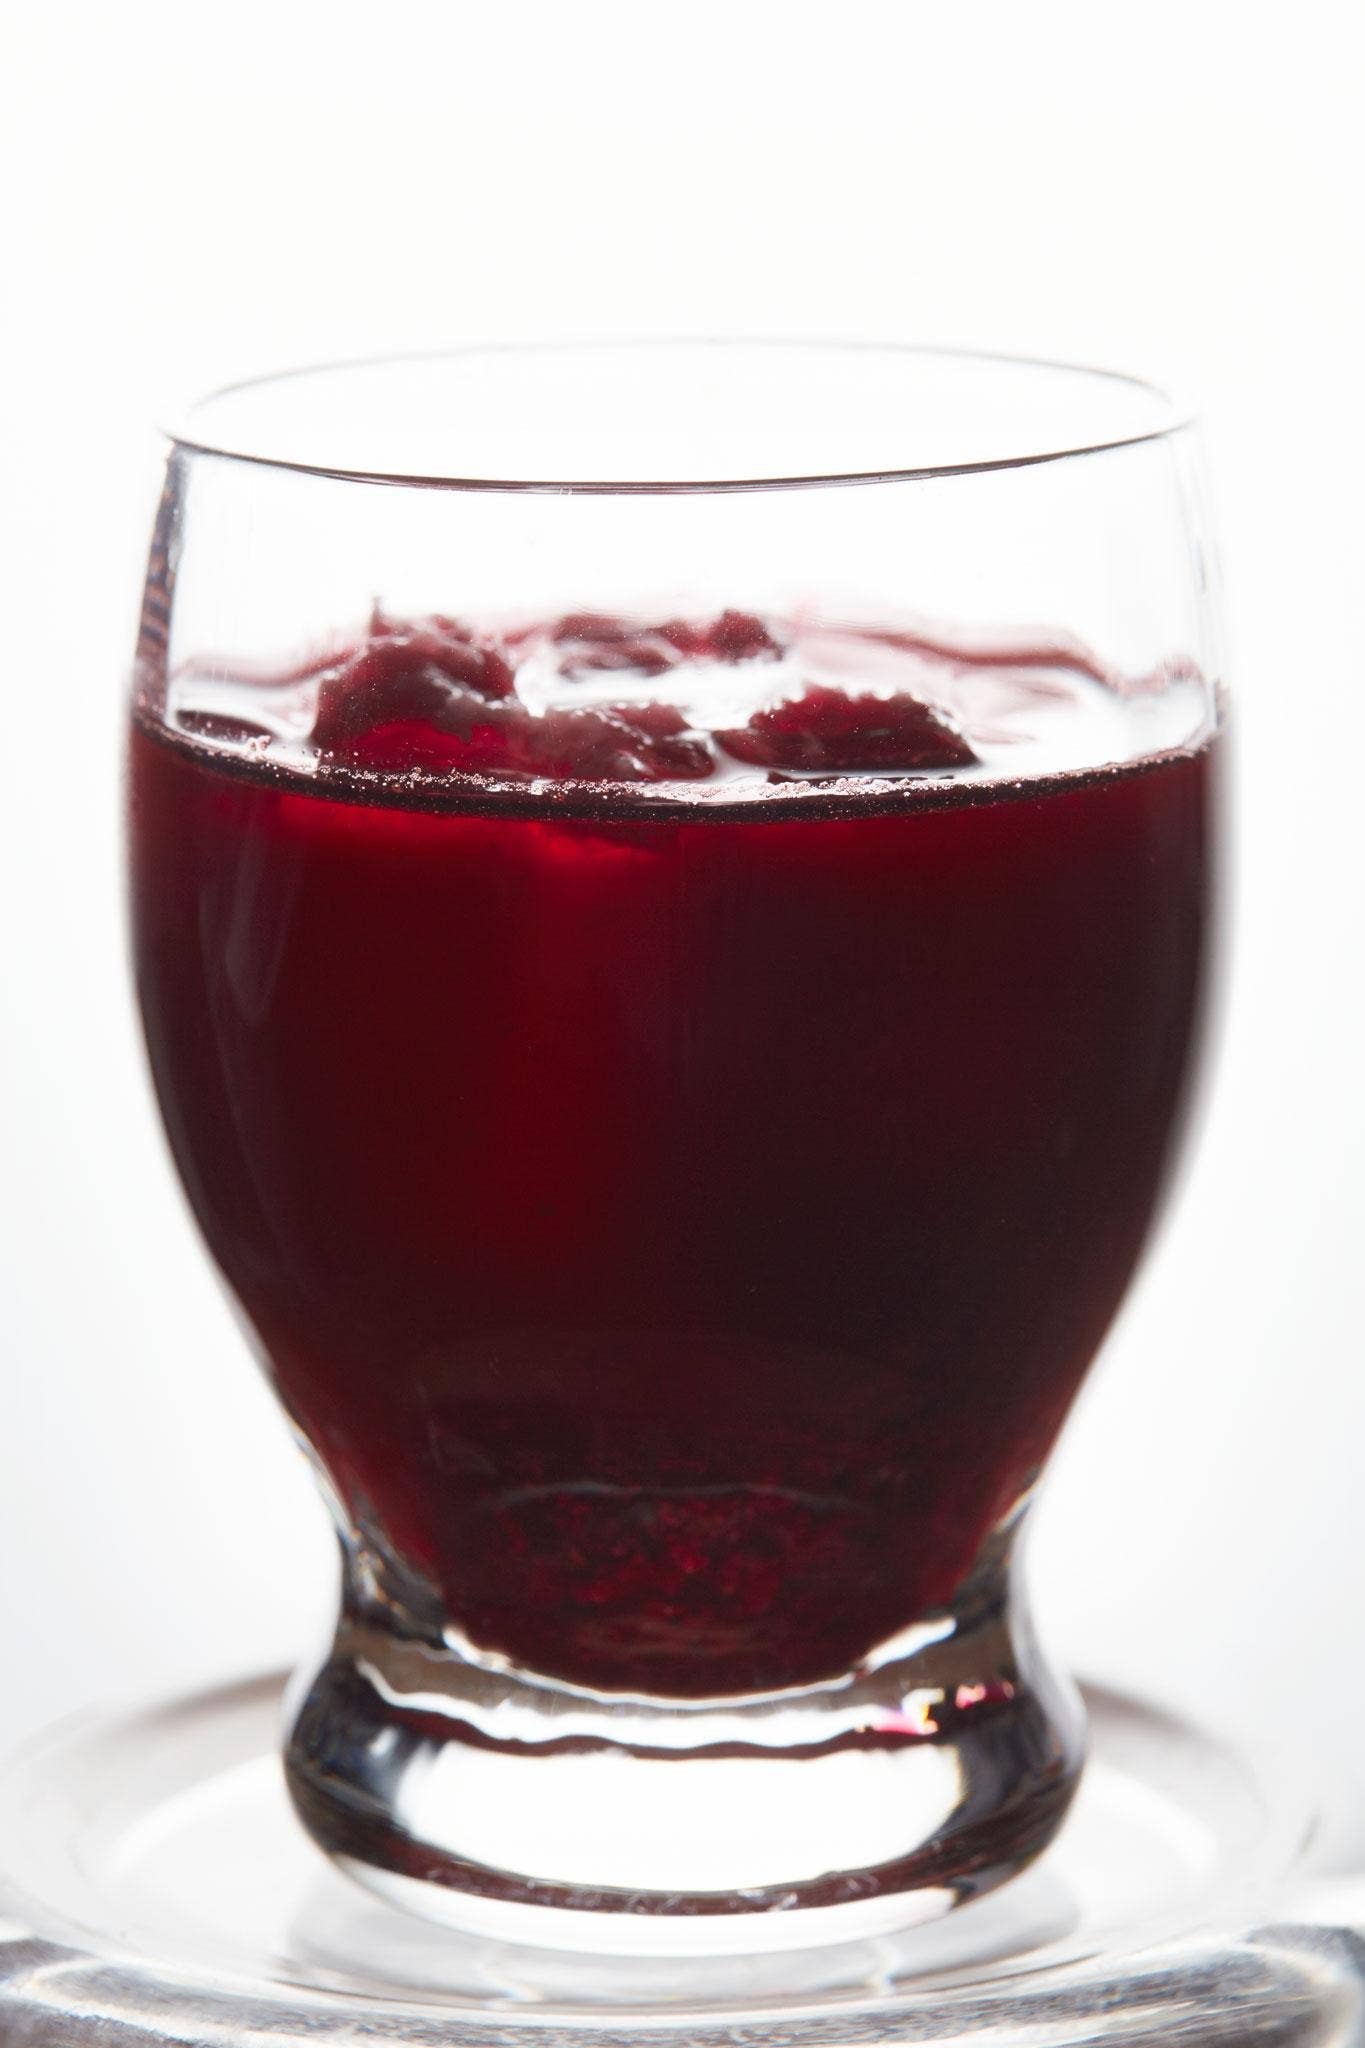 Serve beetroot and vodka shots with caviar or as a shot at a cocktail party